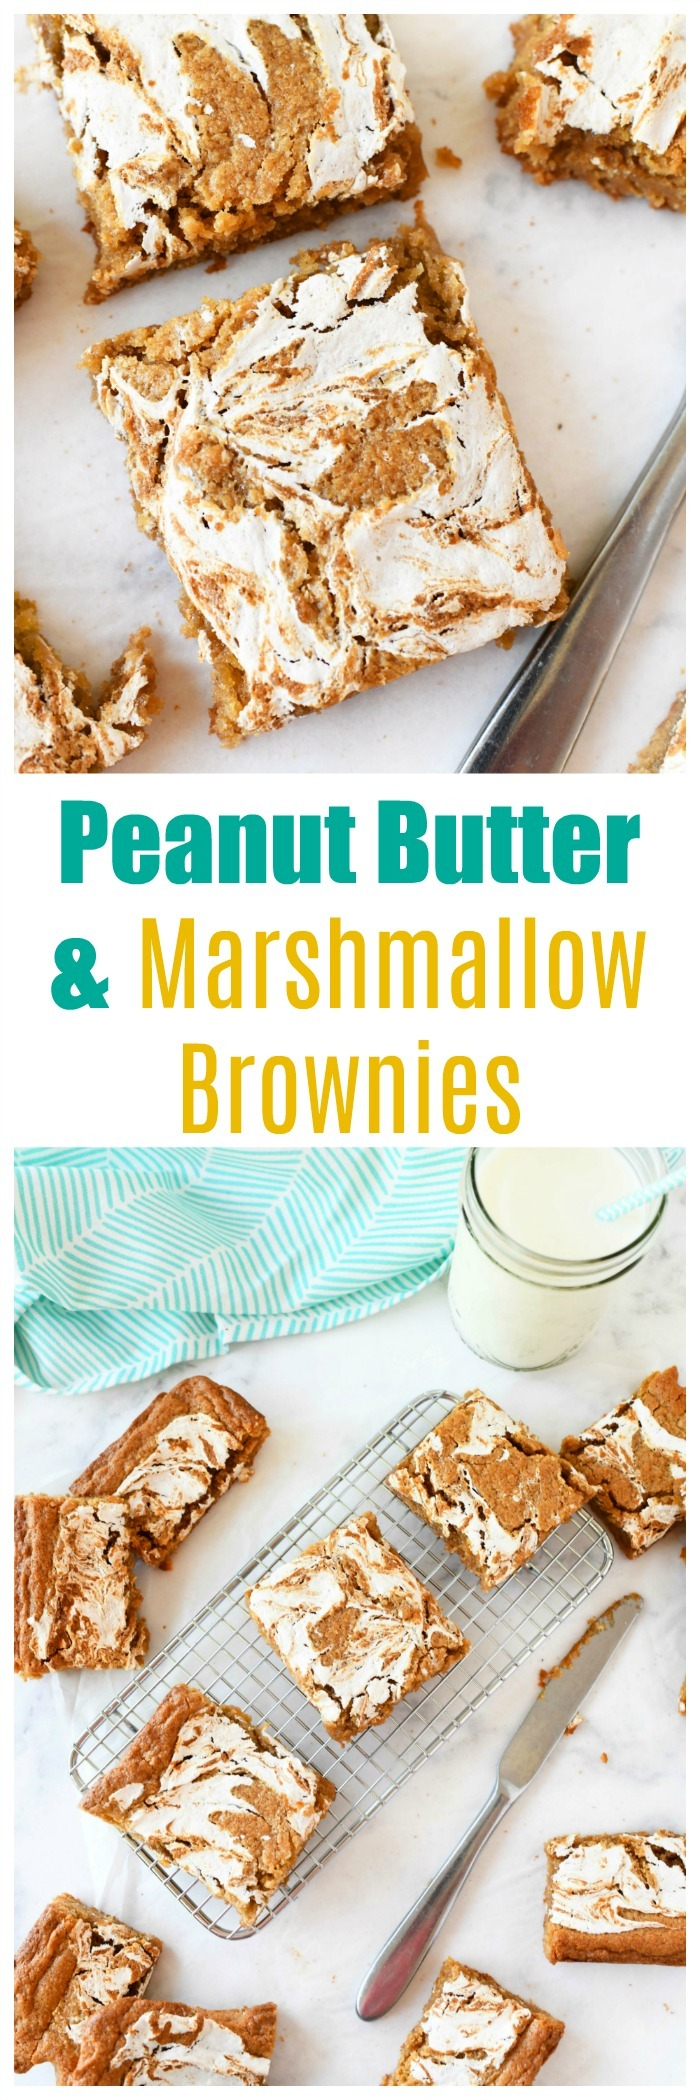 Peanut Butter & Marshmallow Brownies